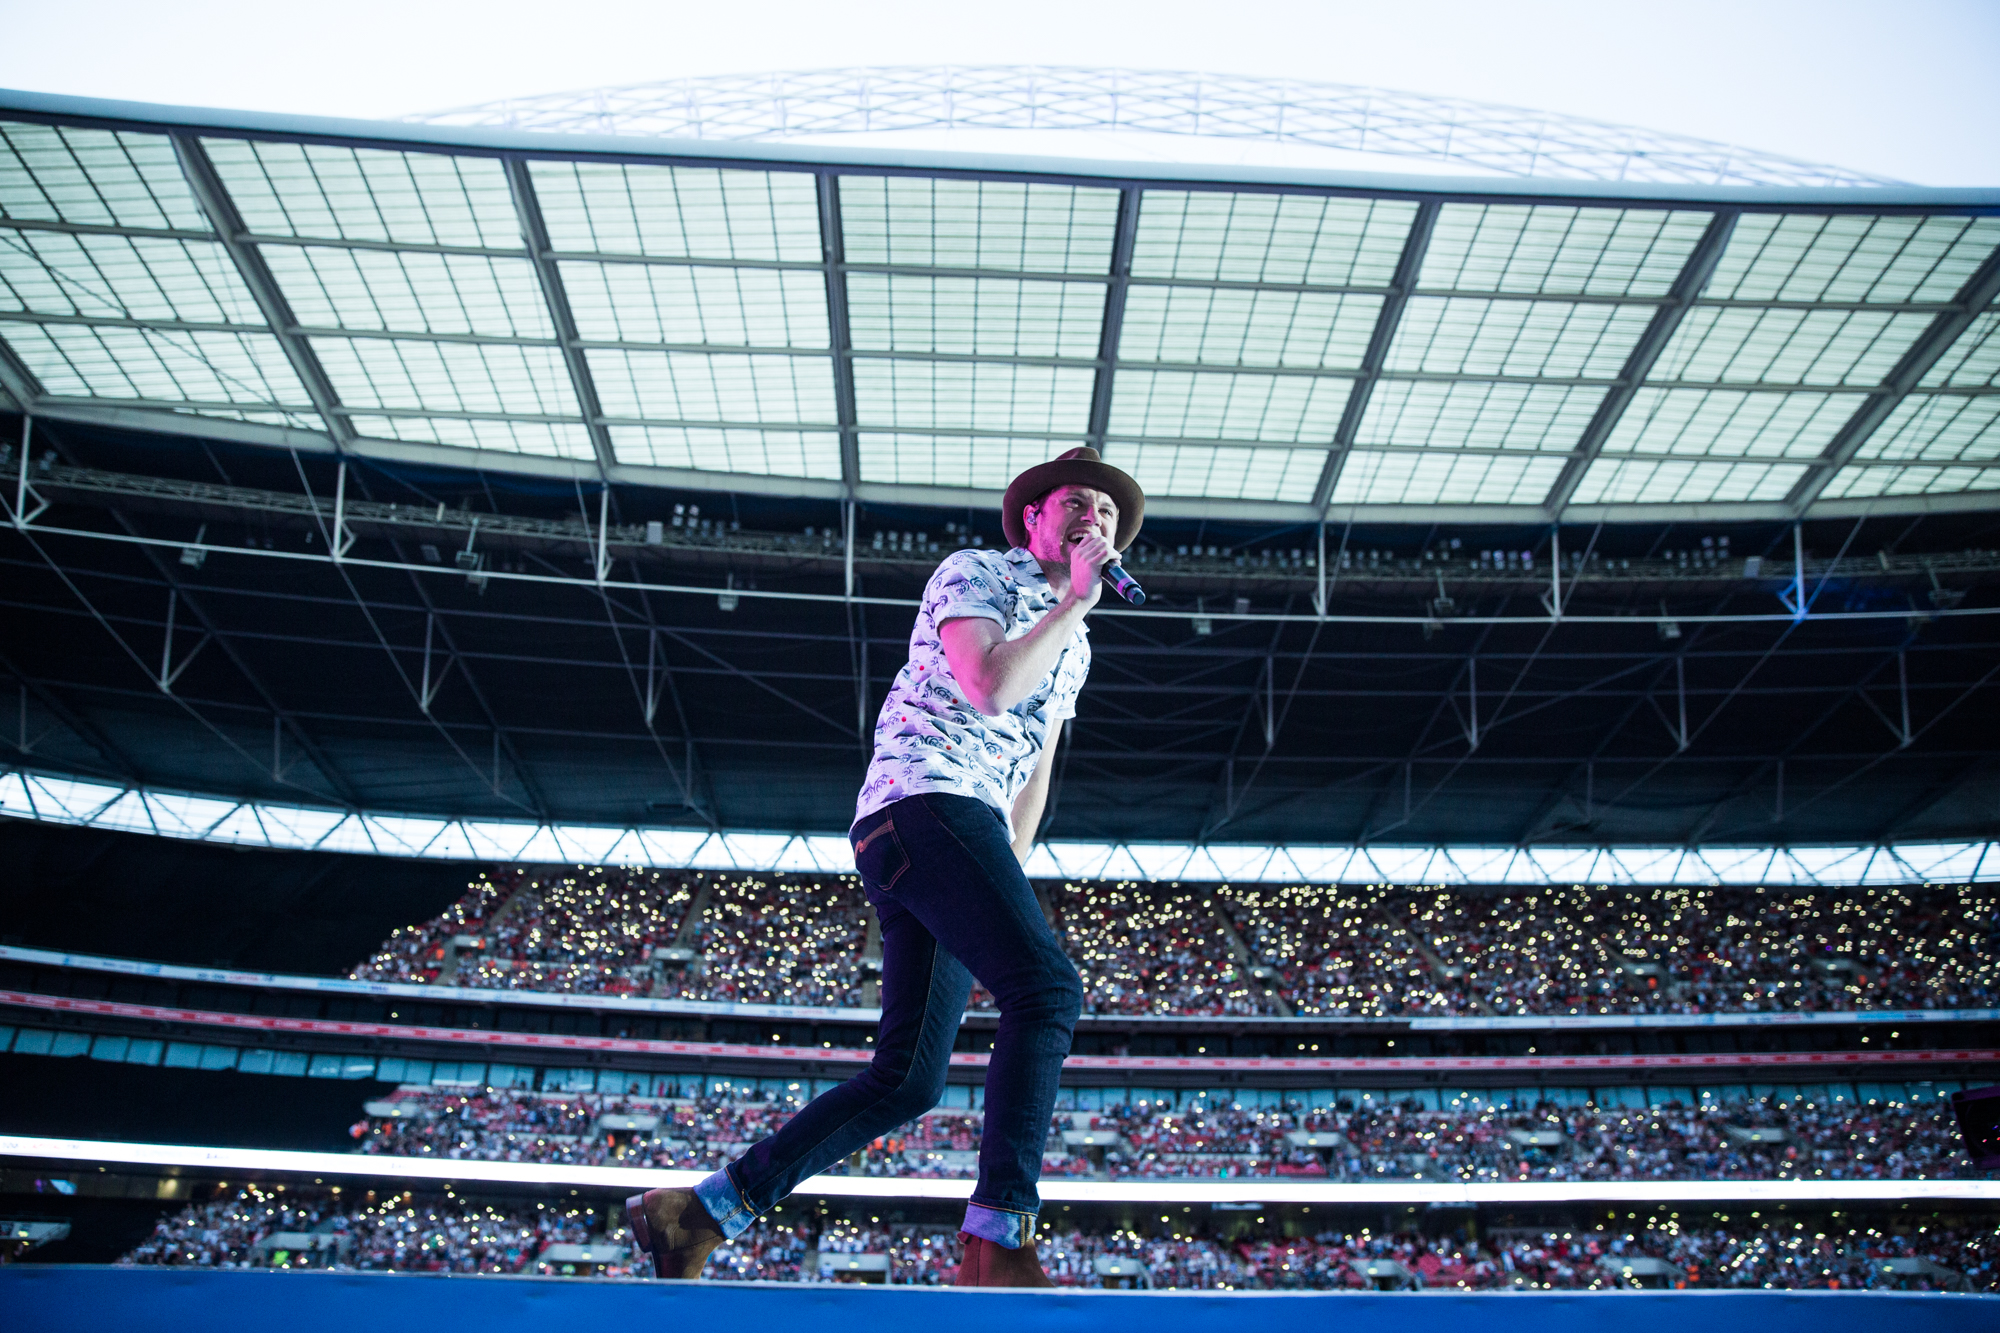 Niall Horan at the Summertime Ball 2017